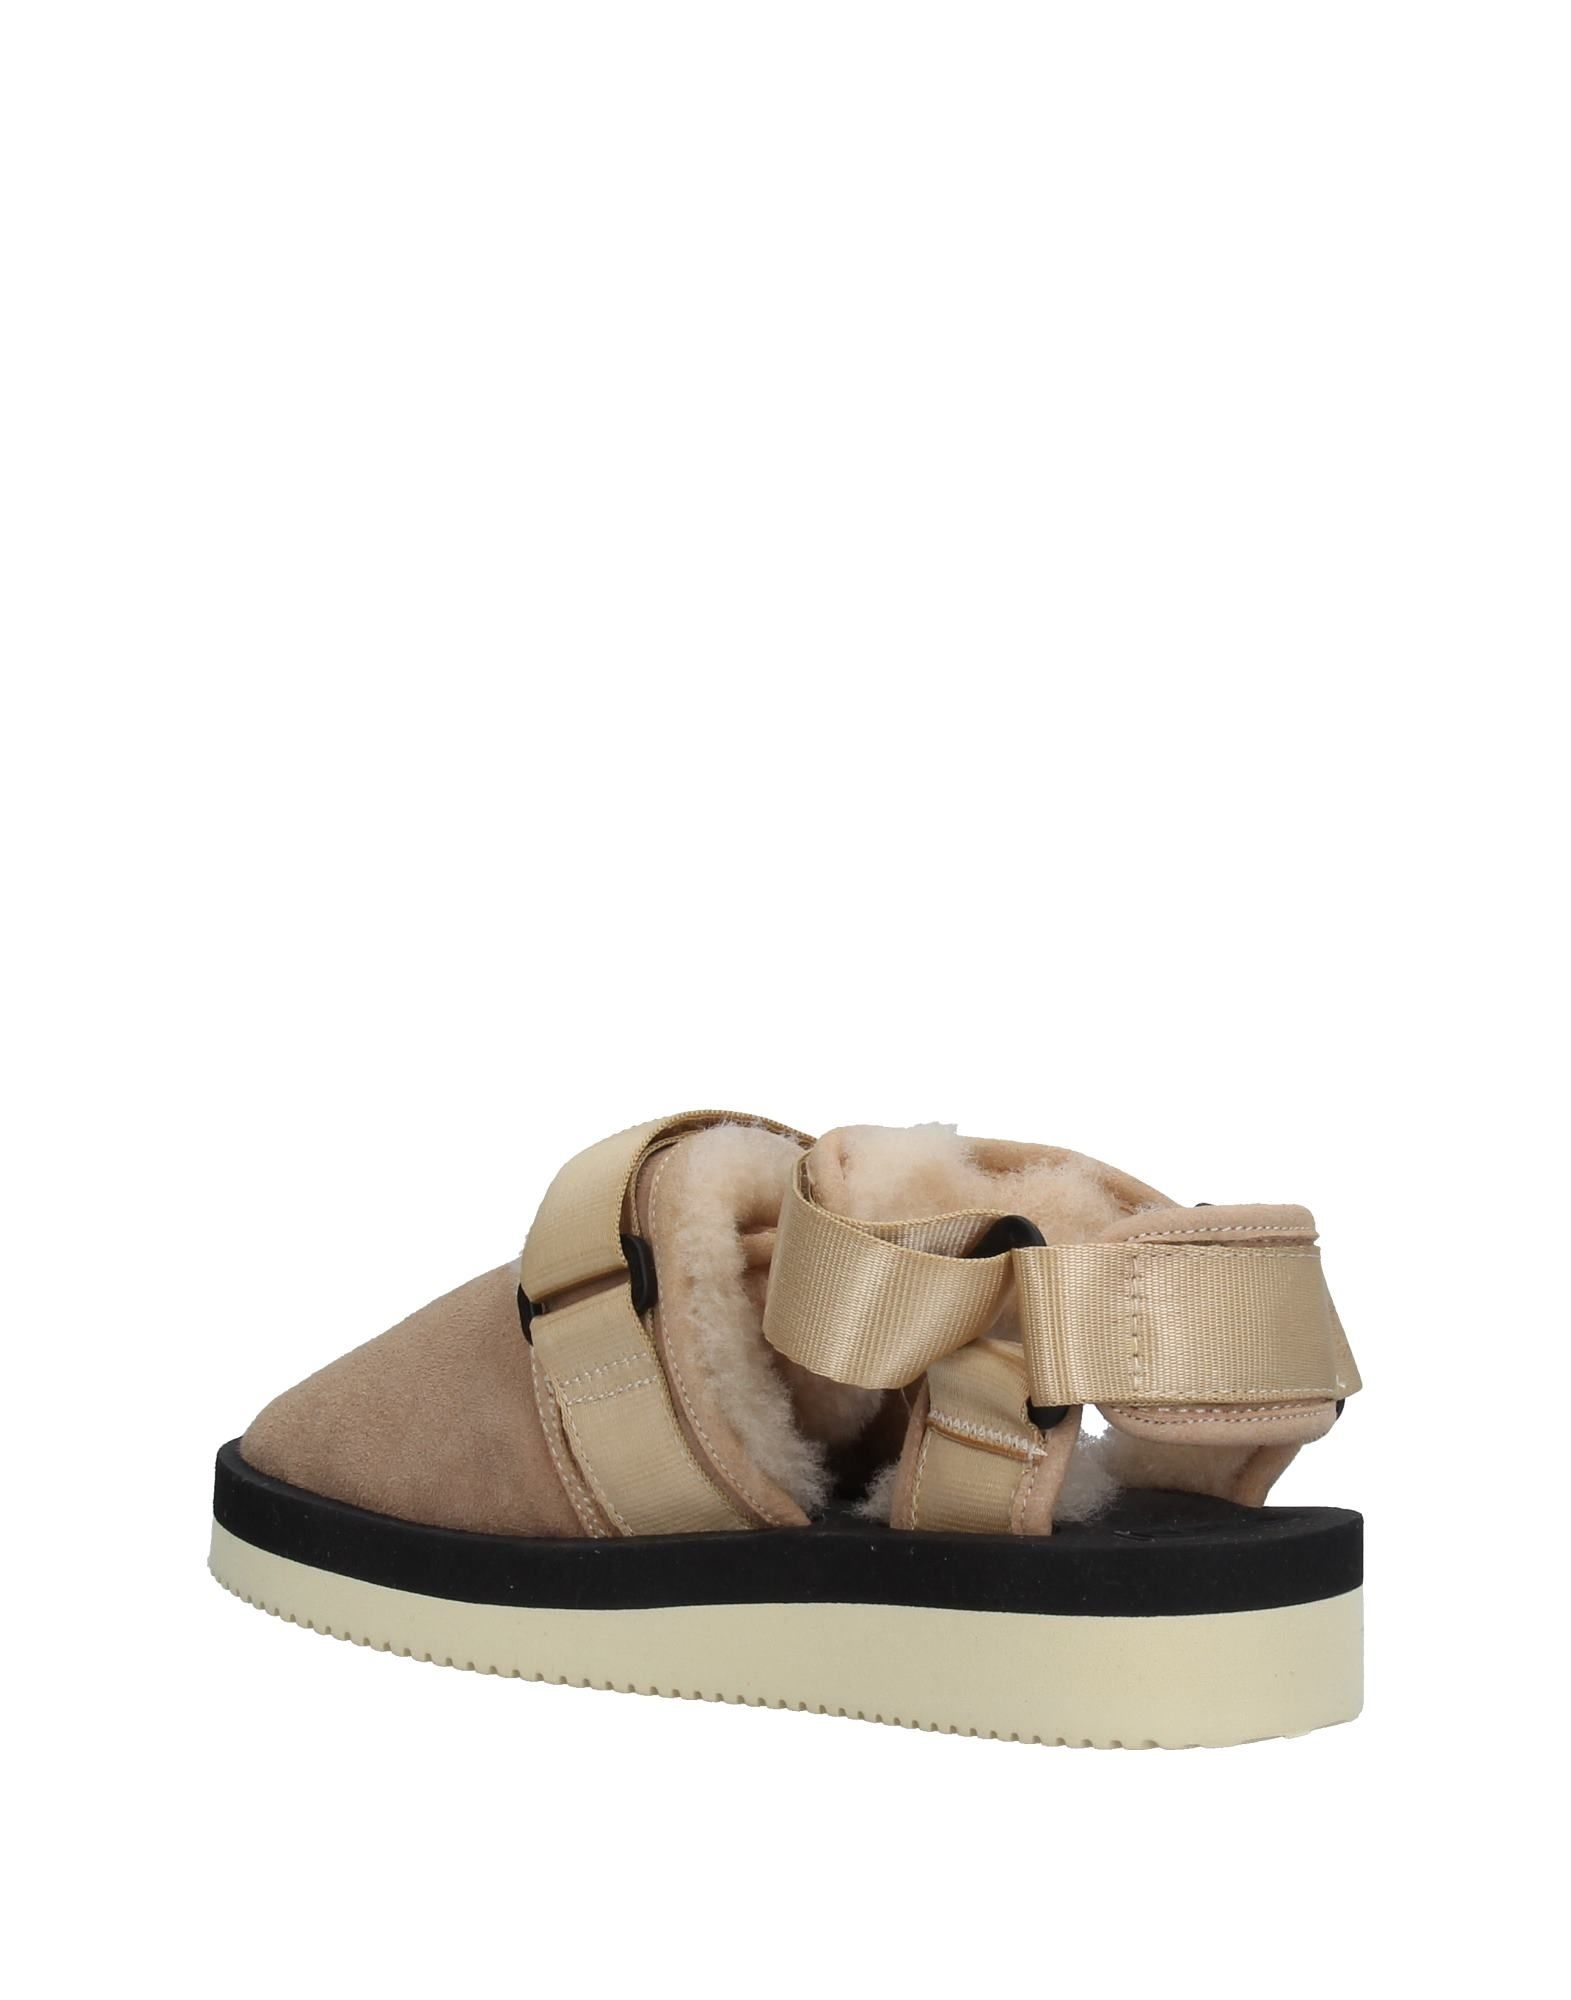 Suicoke Suicoke Suicoke Sandals - Men Suicoke Sandals online on  Canada - 11243467GM 1d4a48